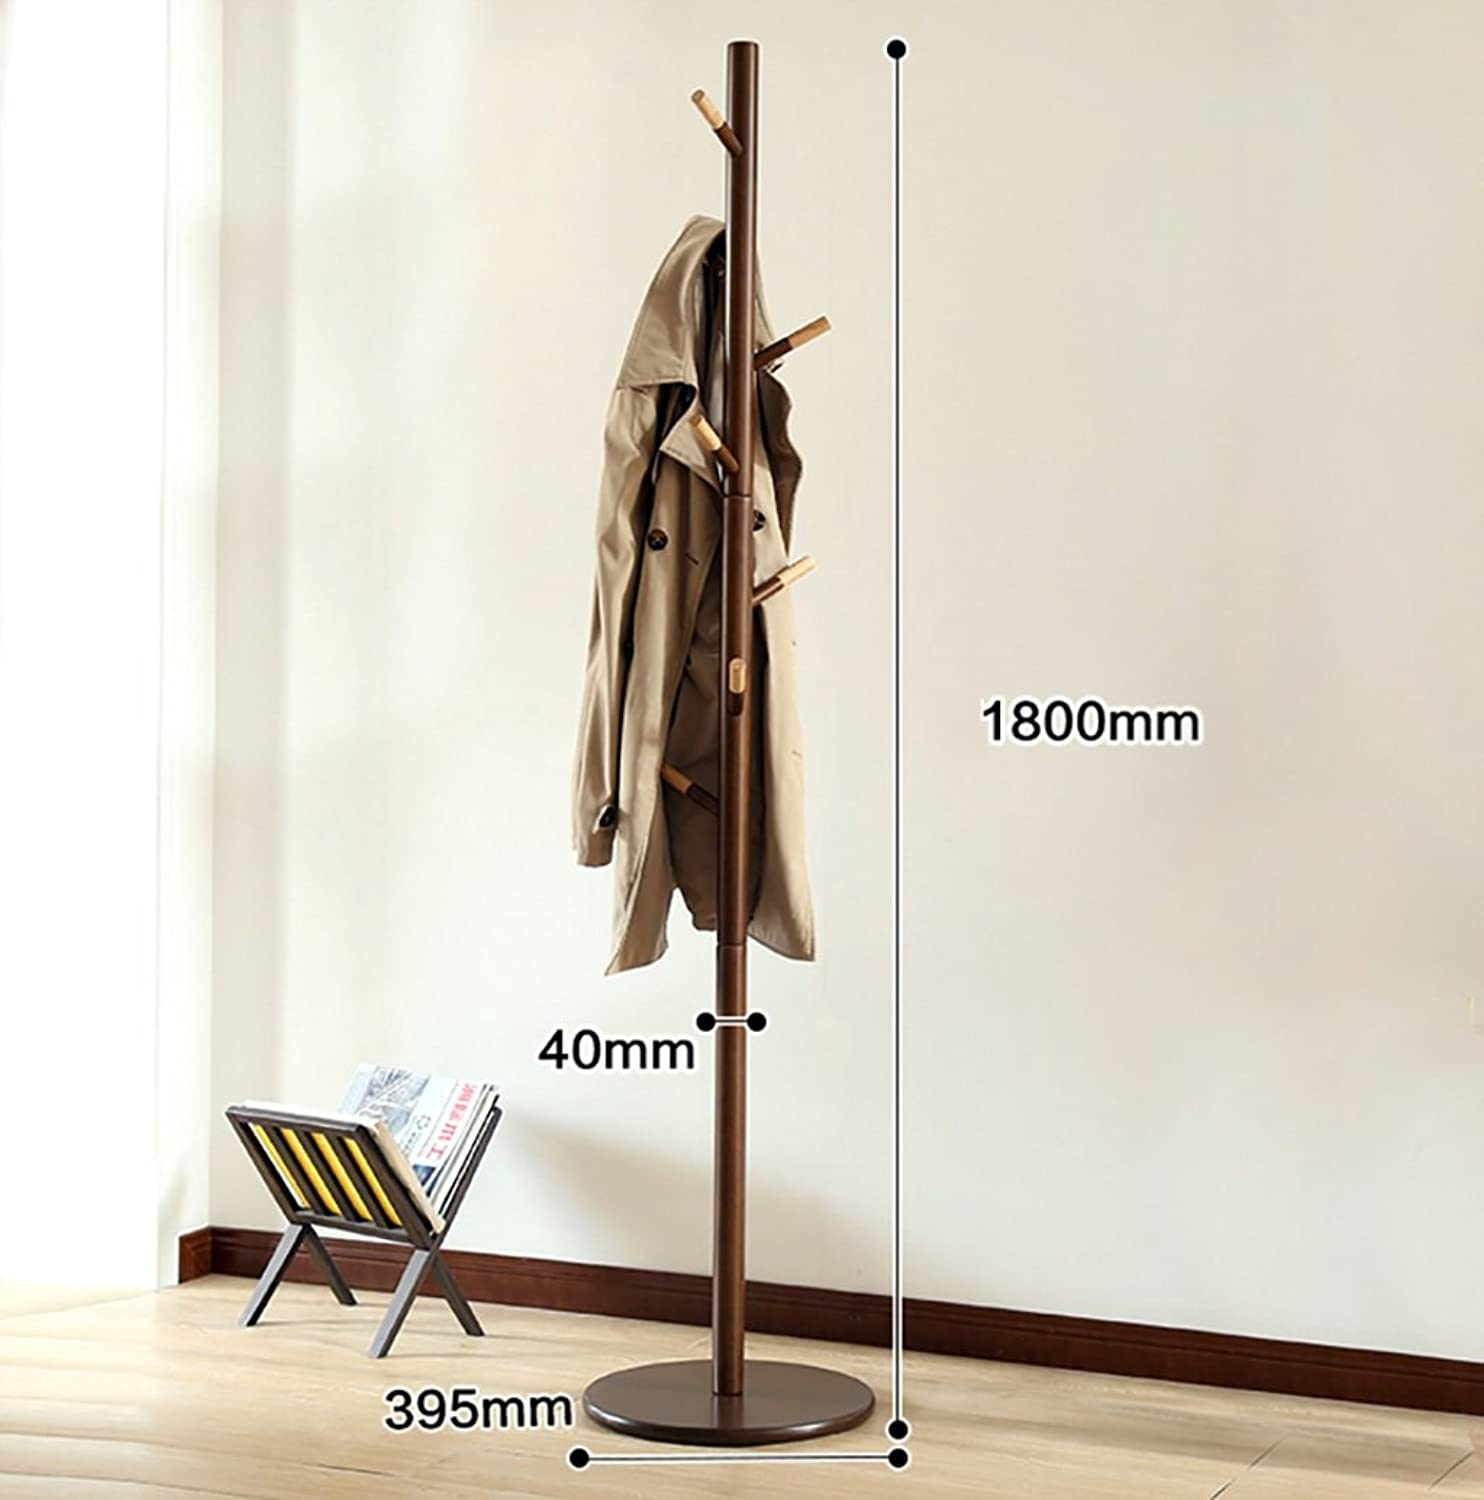 Wooden Coat Rack Free Standing, with 9 Hooks Lacquered Pine Wood Tree Coat Rack Stand for Coats, Hats, Scarves, Clothes, and Handbags 180cm (color   2)